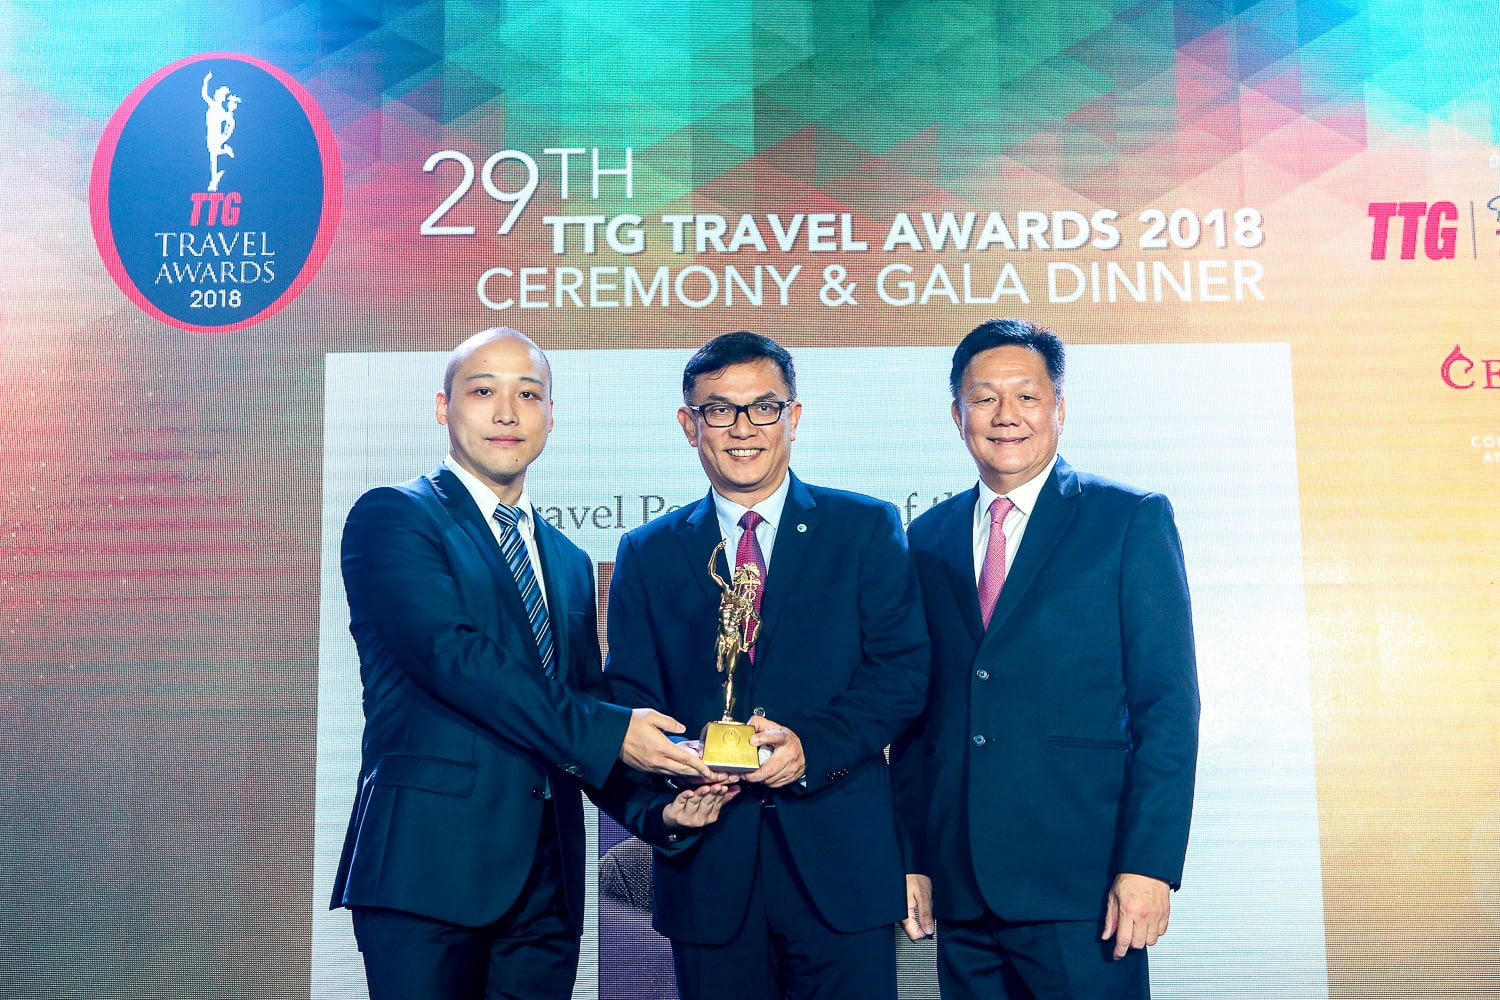 Mr Robin Yap, Chairman Emeritus, The Travel Corporation